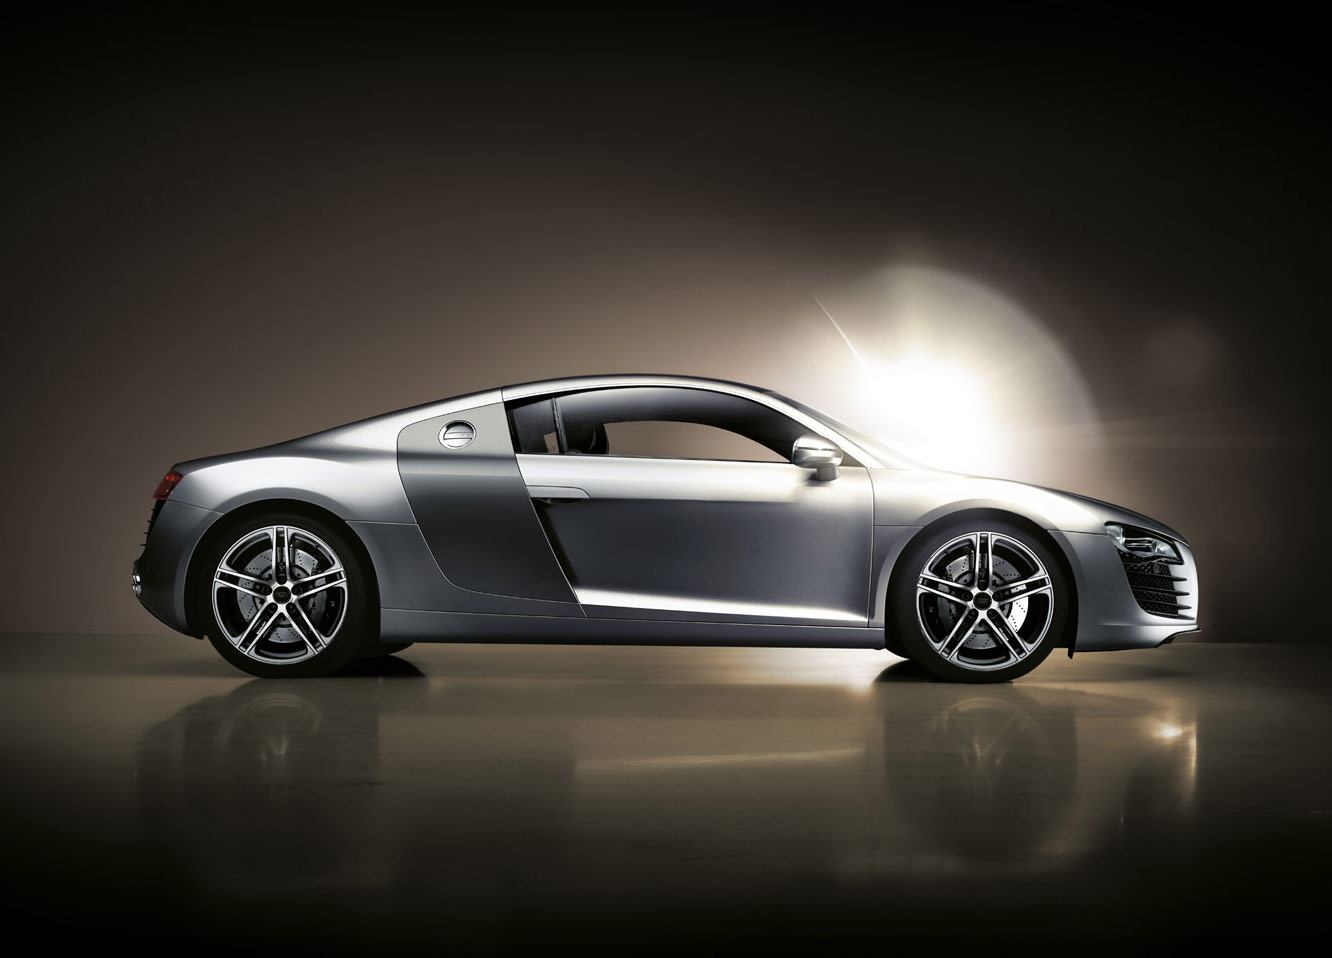 audi r8 wallpaper 3 world of cars. Black Bedroom Furniture Sets. Home Design Ideas